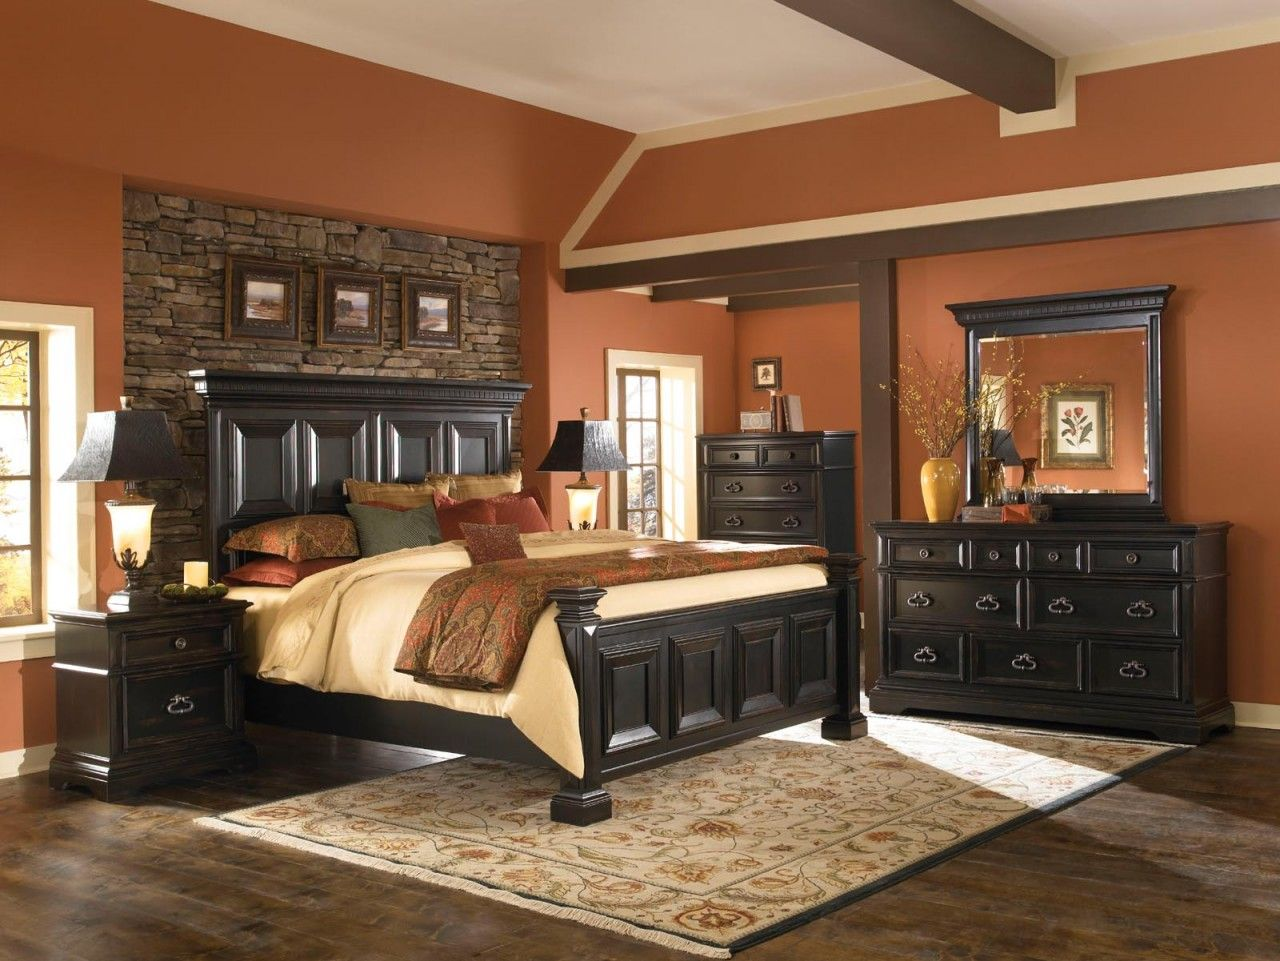 Great The Pulaski Brookfield Panel Bedroom Set Provides An Understated  Traditional Look For Those With A Classic Sense Of Style. Choose Queen,  King Or CA King.